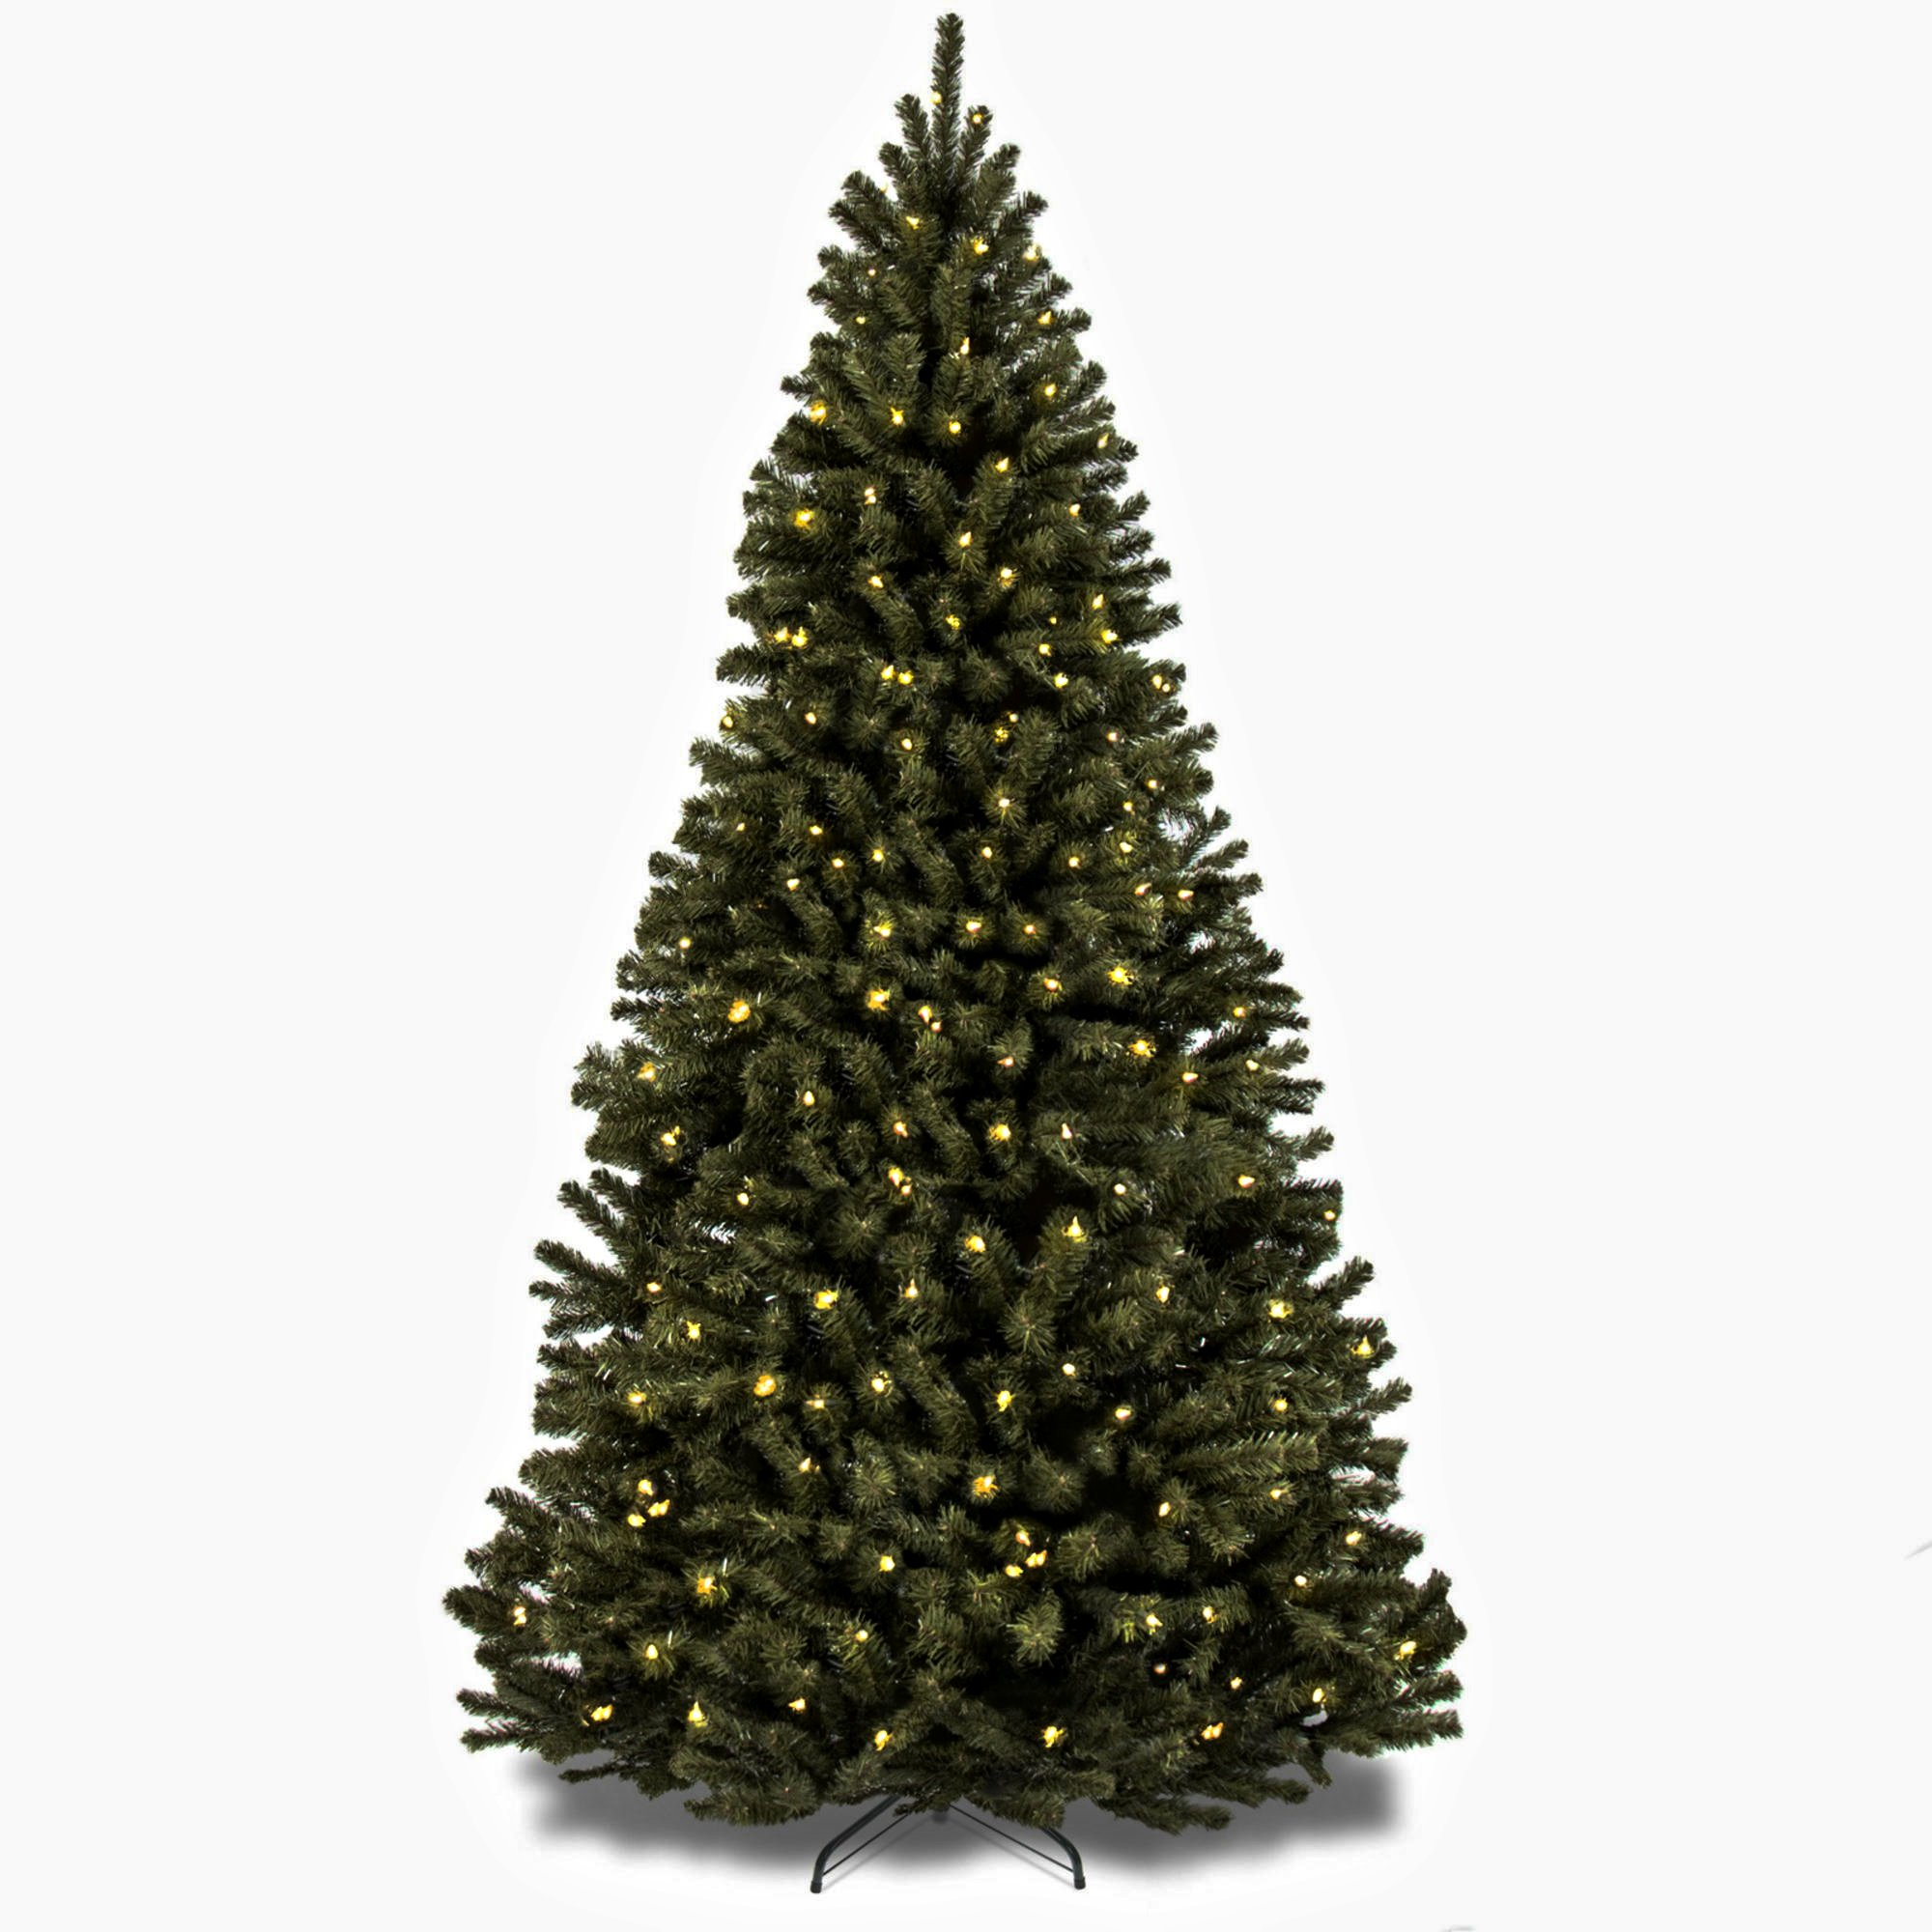 Artificial Christmas Tree. Fake 7.5 Foot Xmas Beautiful Premium Design Fir Looks Stylish With It's Classic Pine Shape, Dense Foliage, Tender White Needles. Great For Indoor Holiday Season Party Decor by Artificial-Christmas-Tree